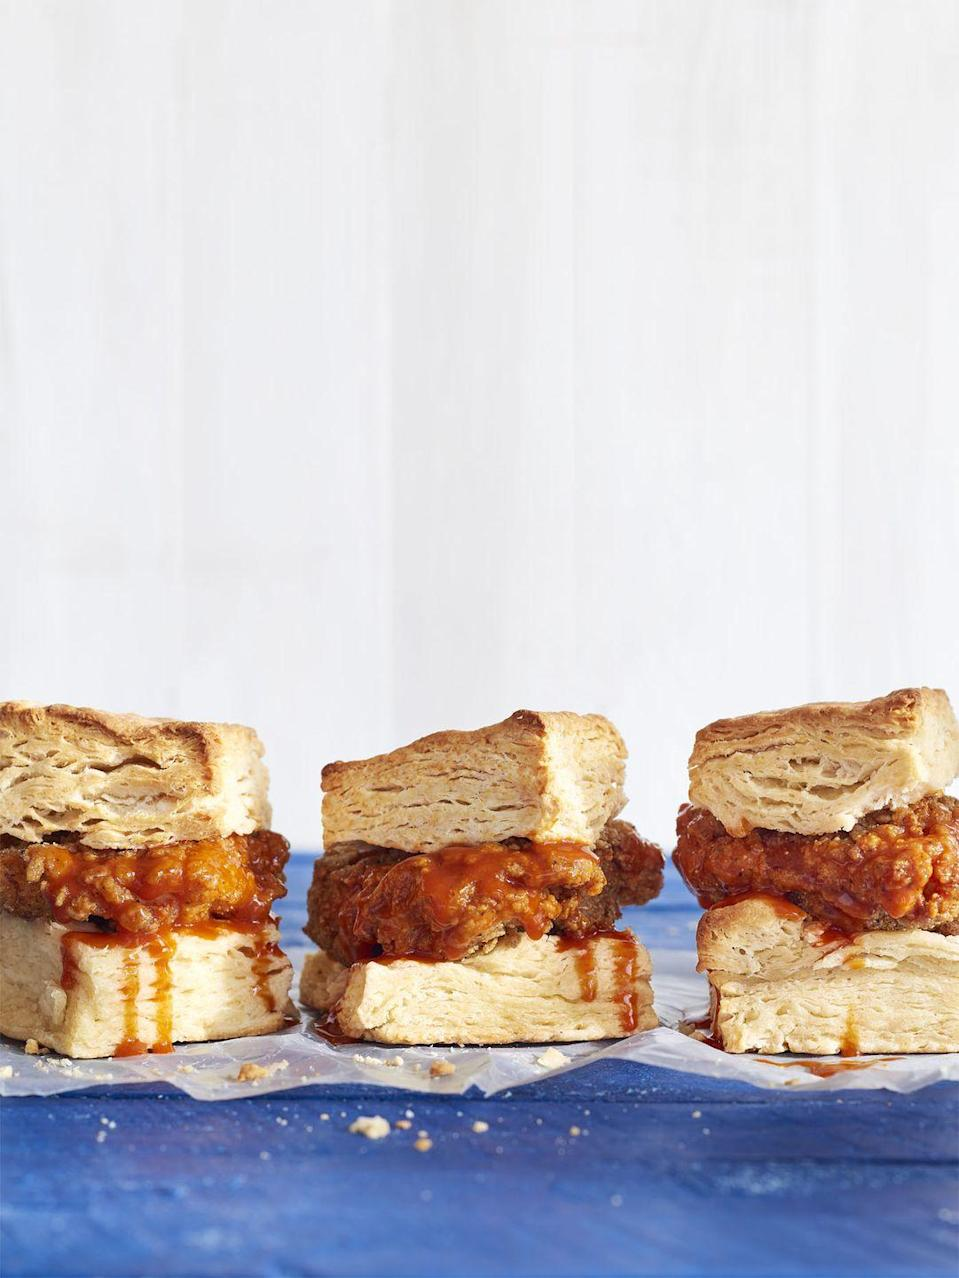 """<p>Are you a chicken and waffles kind of person? If so, you're going to <em>love </em>this.</p><p><strong><a href=""""https://www.countryliving.com/food-drinks/recipes/a41656/mile-high-breakfast-chicken-biscuit-sandwiches-recipe/"""" rel=""""nofollow noopener"""" target=""""_blank"""" data-ylk=""""slk:Get the recipe"""" class=""""link rapid-noclick-resp"""">Get the recipe</a>.</strong></p>"""